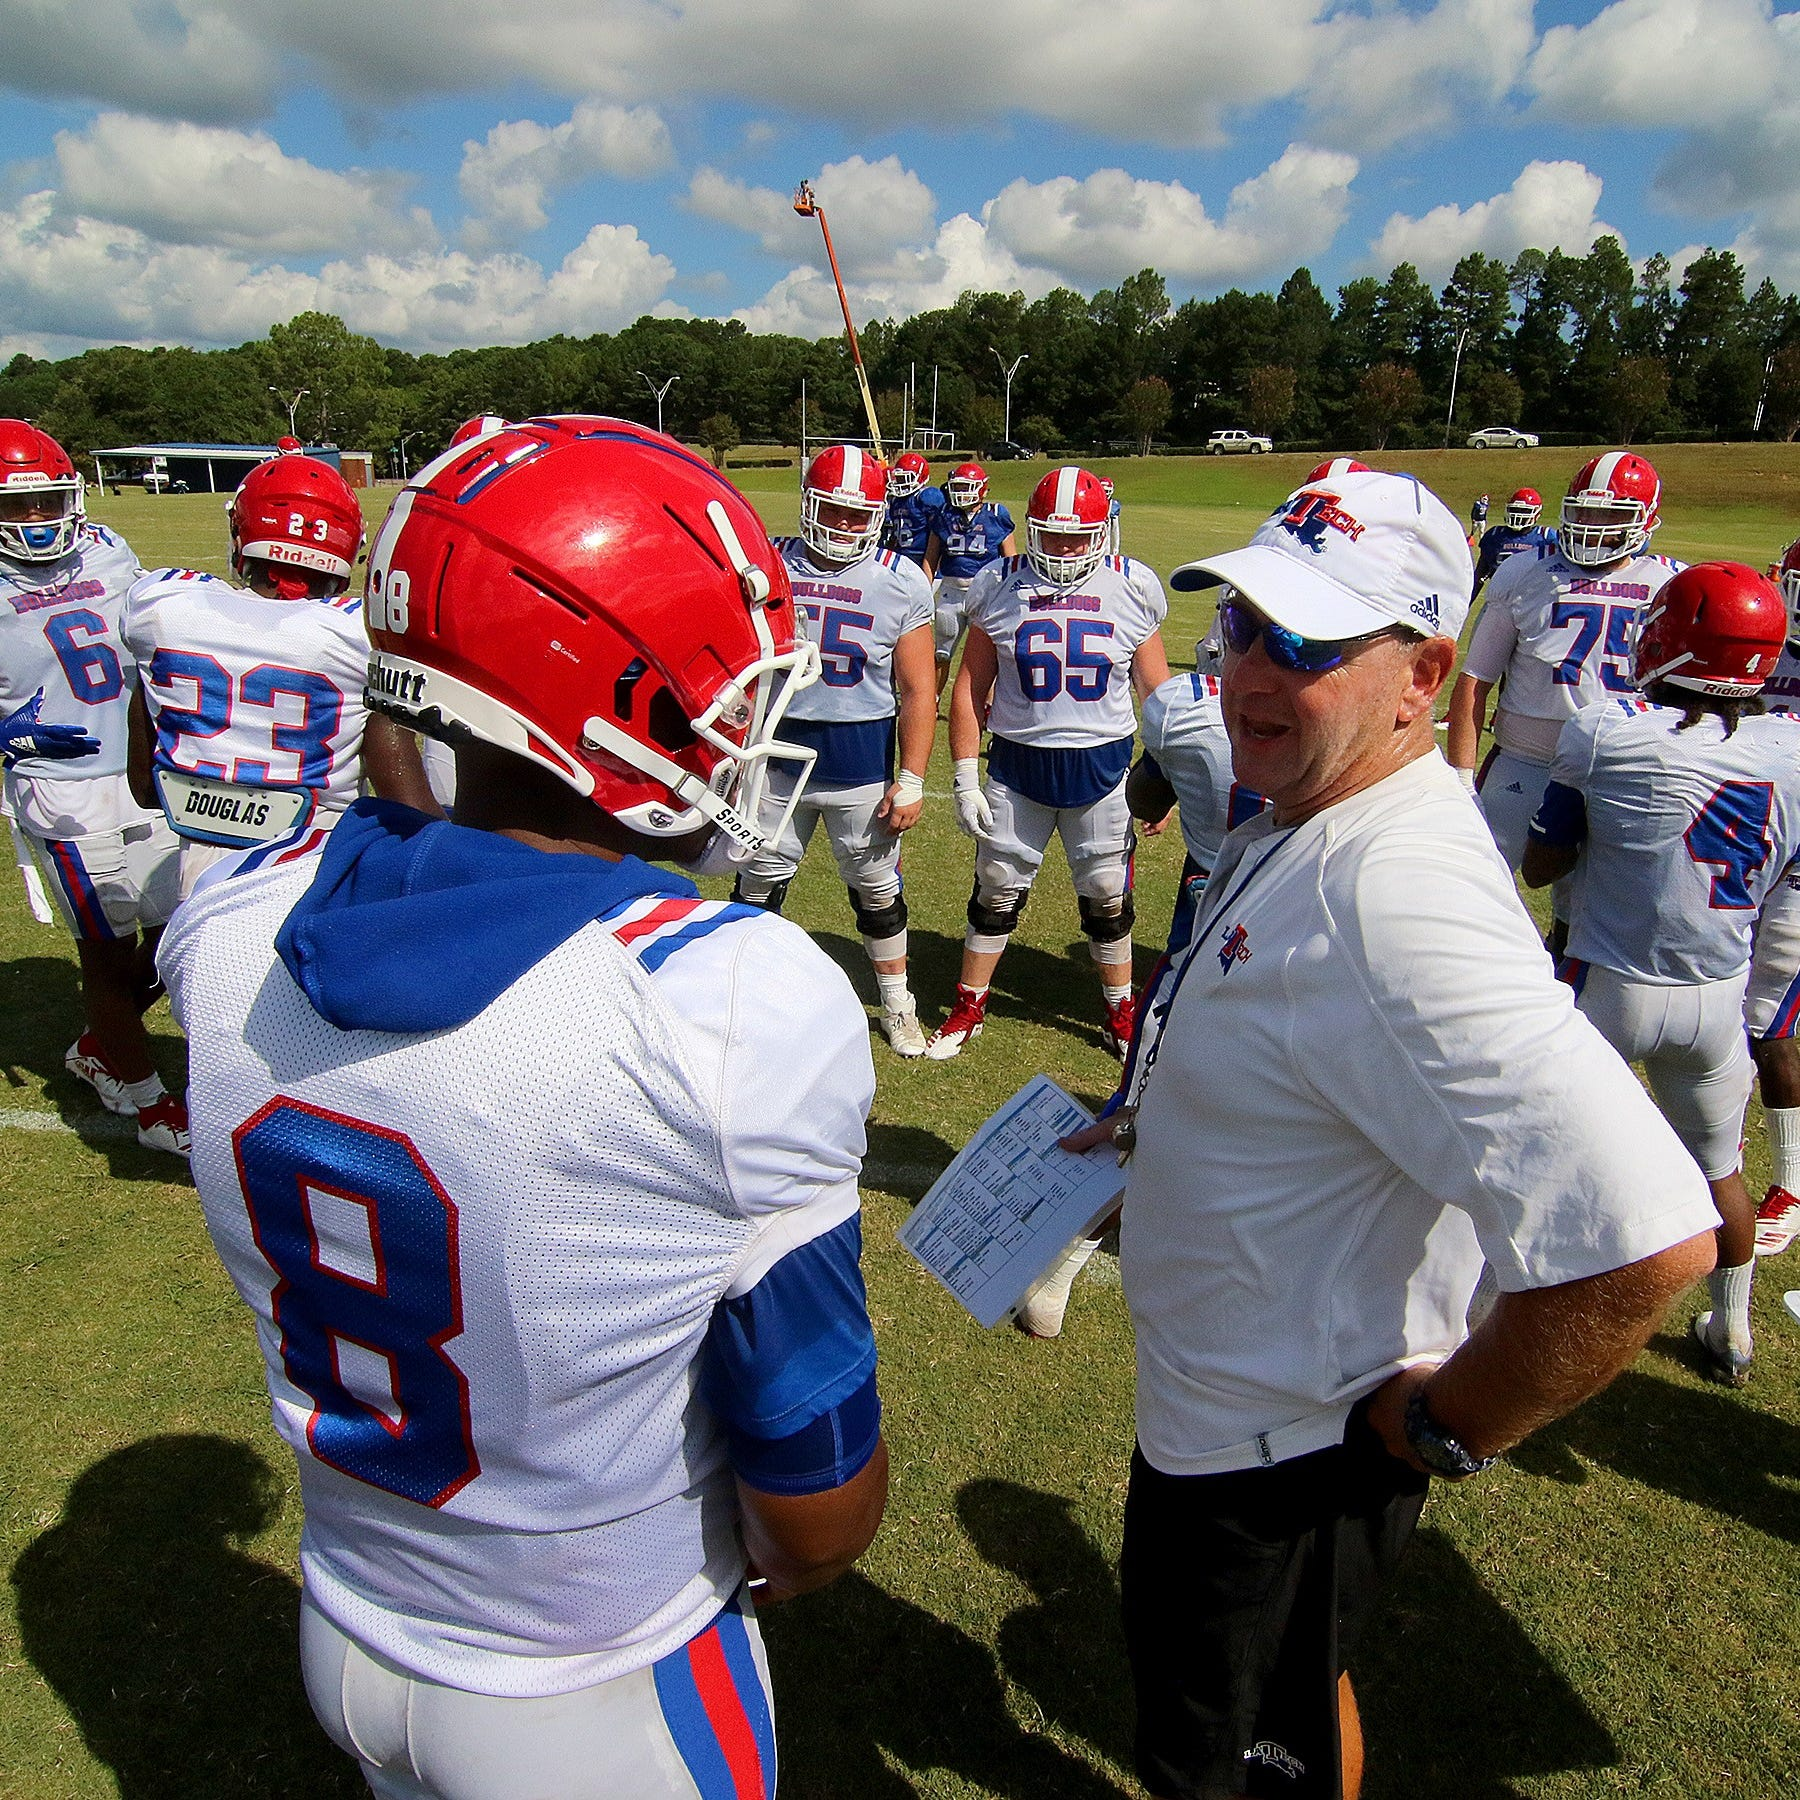 Louisiana Tech's first scrimmage has some good and some bad